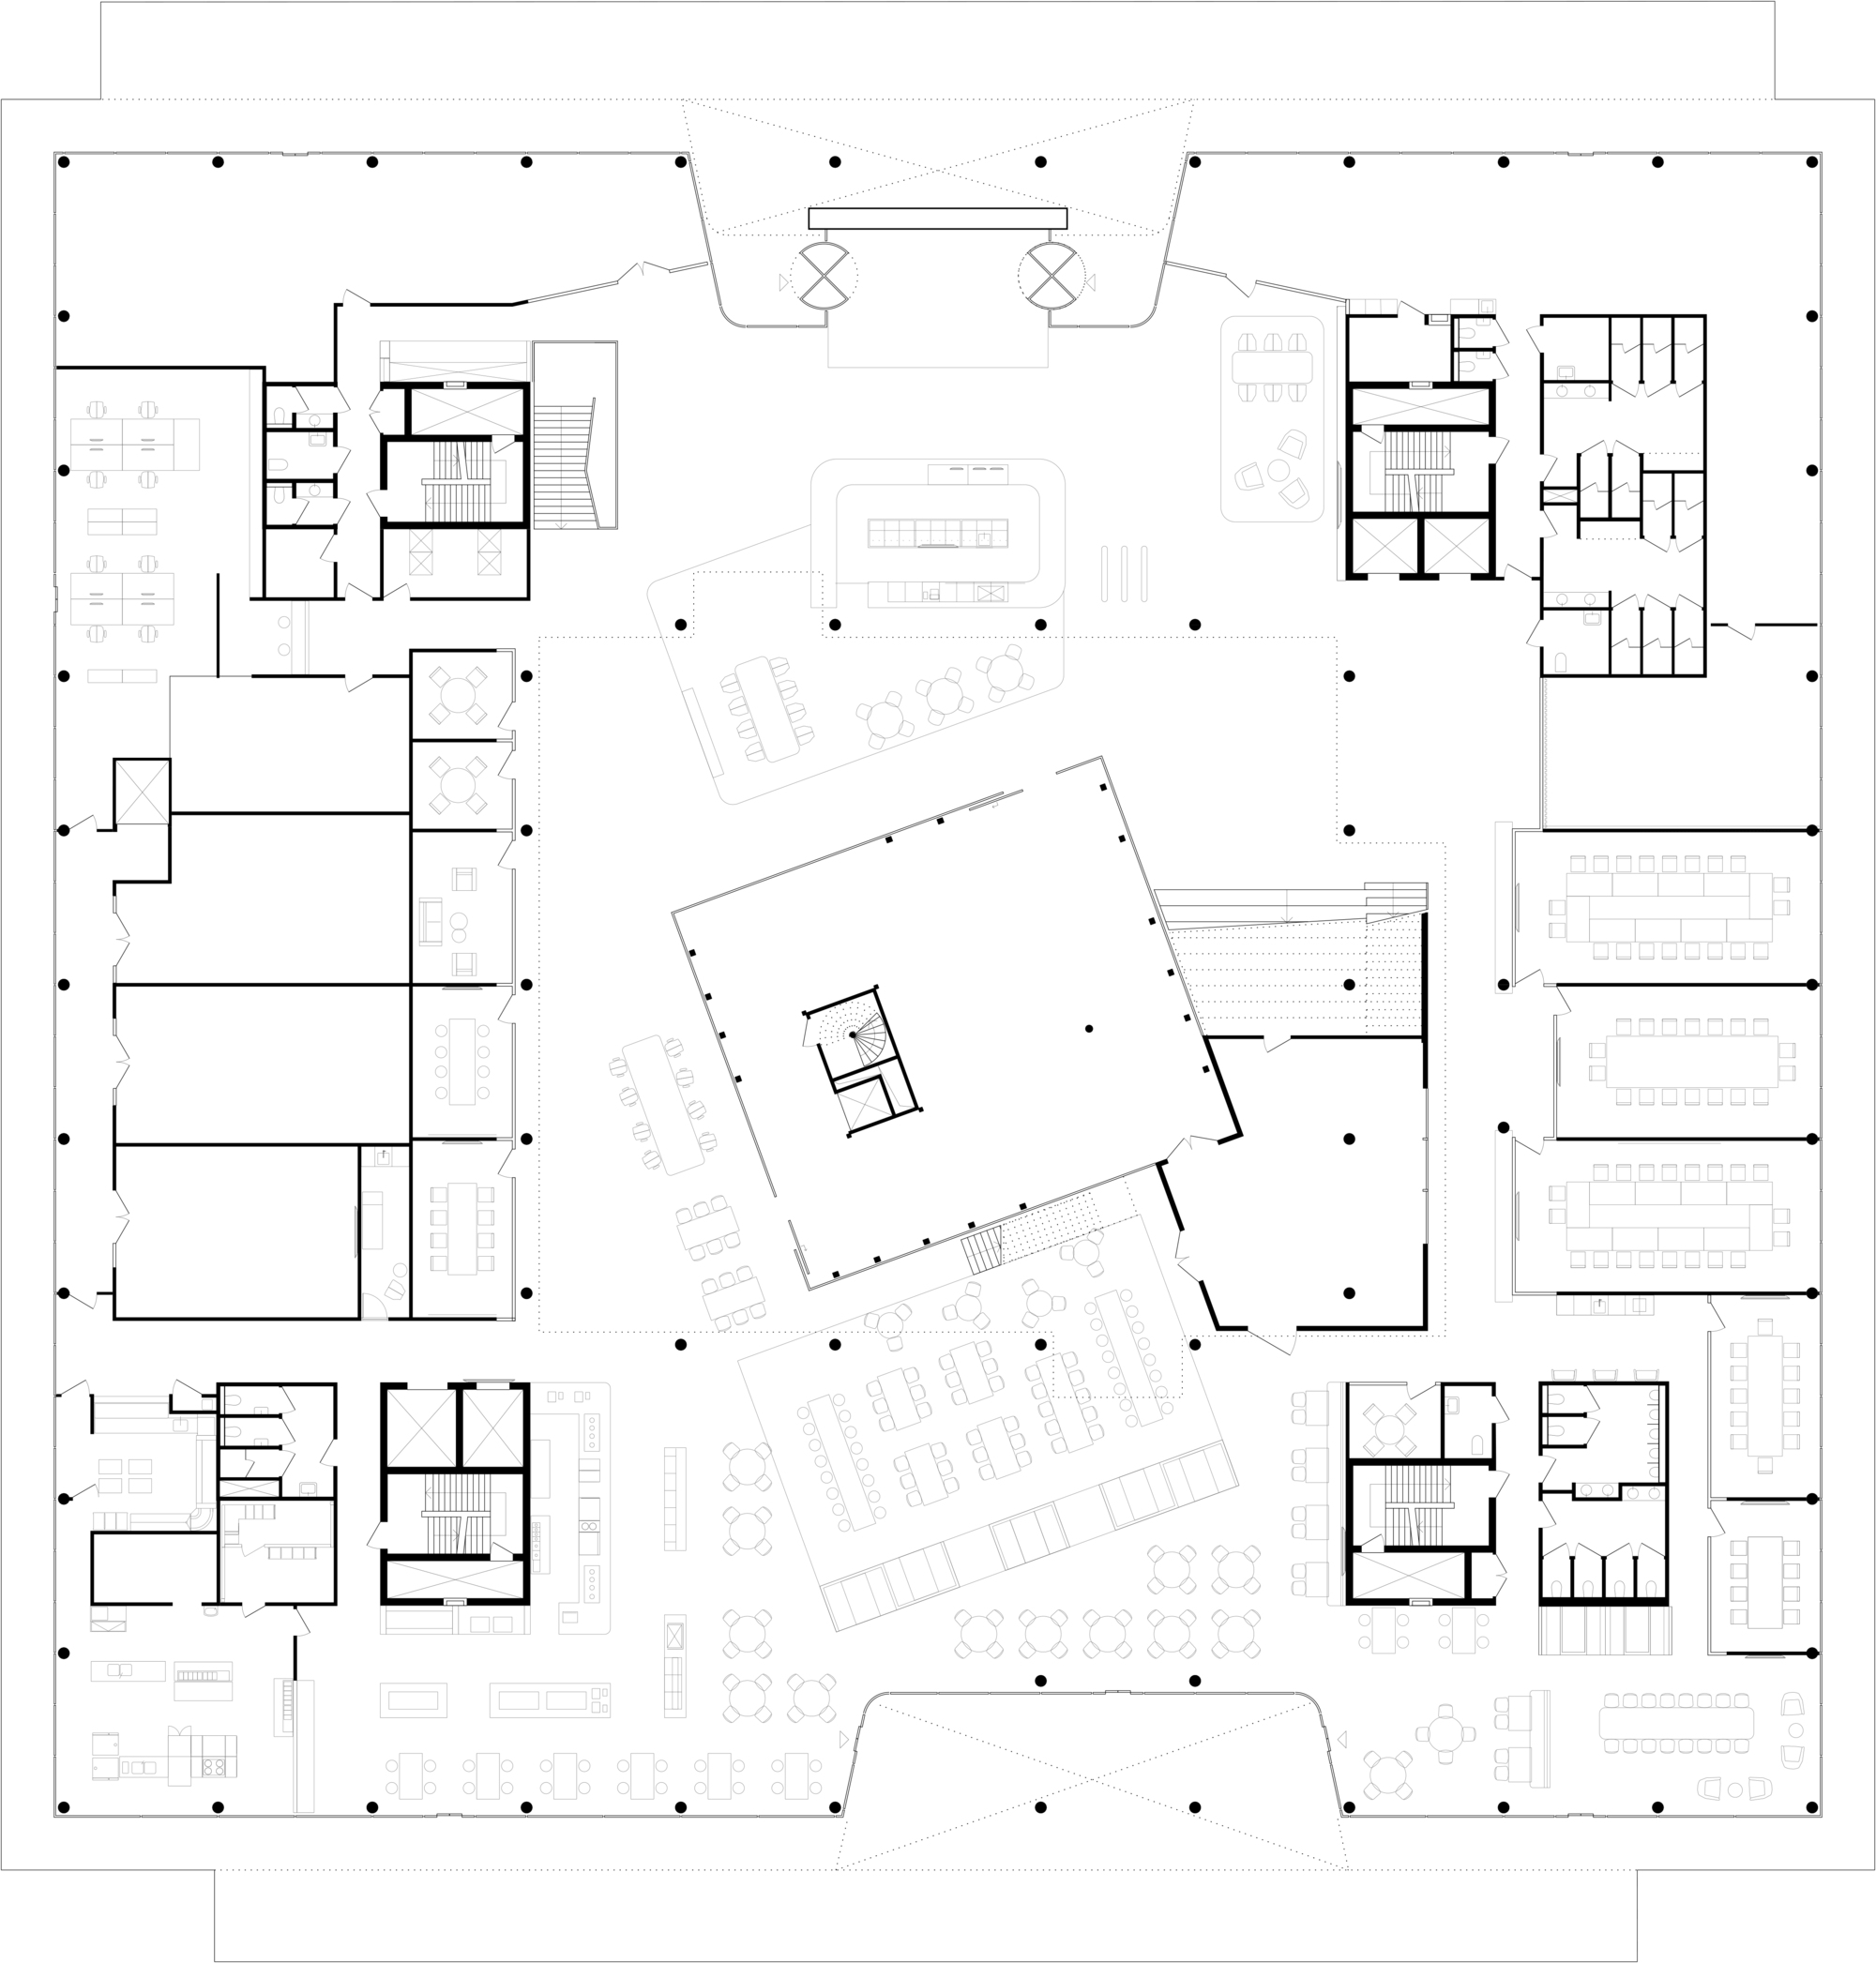 23_Powerhouse_Company_ASICS_Ground_Floor_Plan_Image_by_Powerhouse_Company.jpg